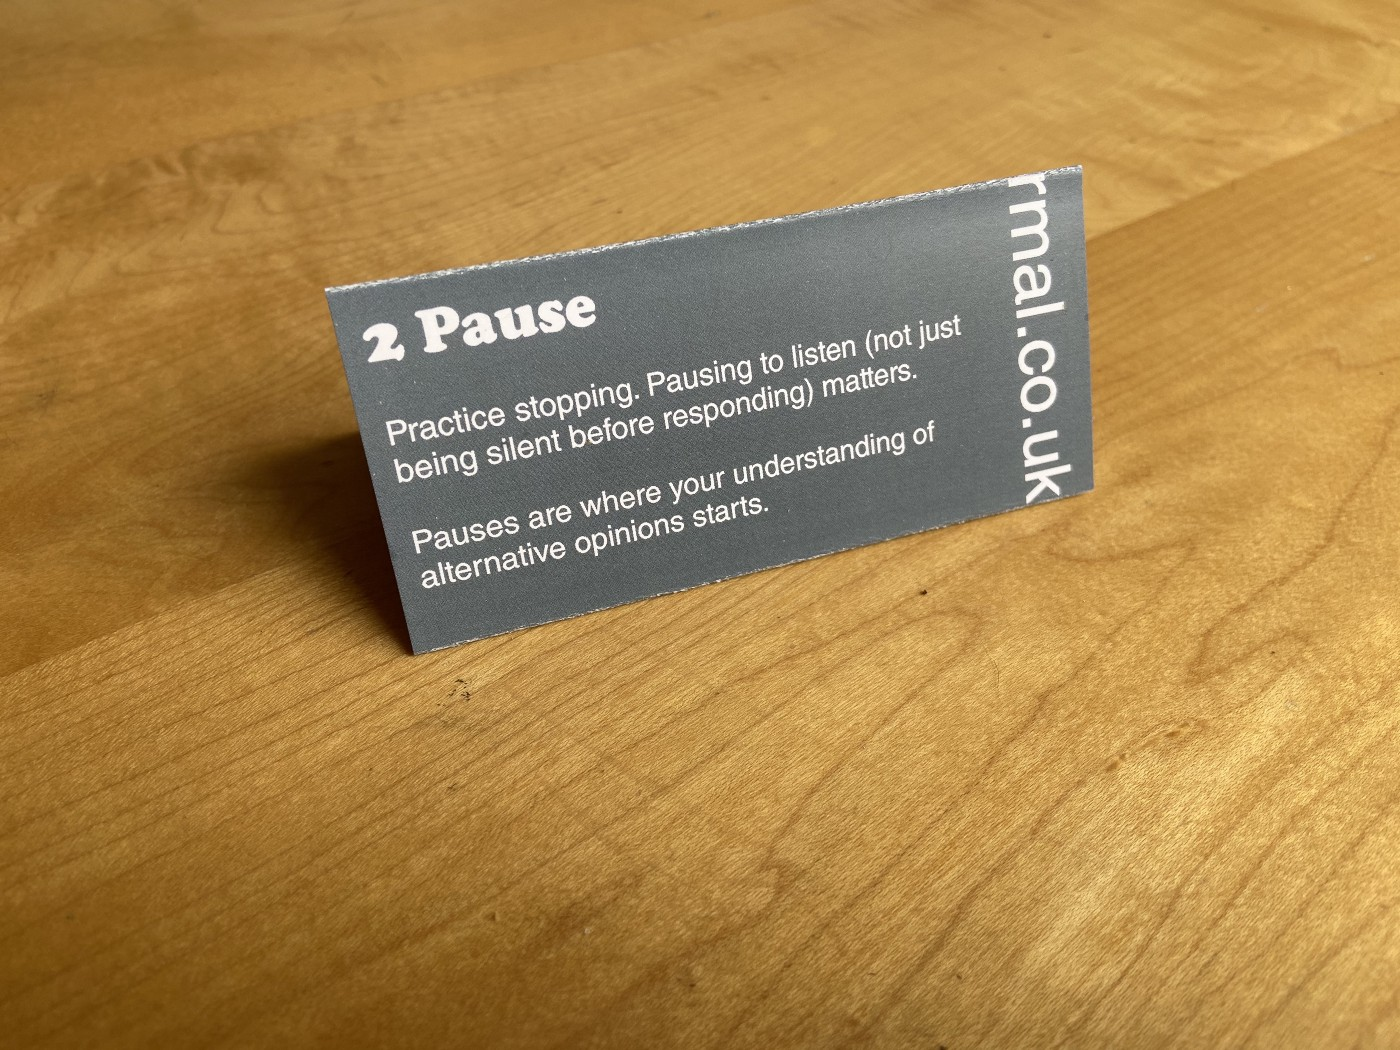 Part 2 of folded card—Pause